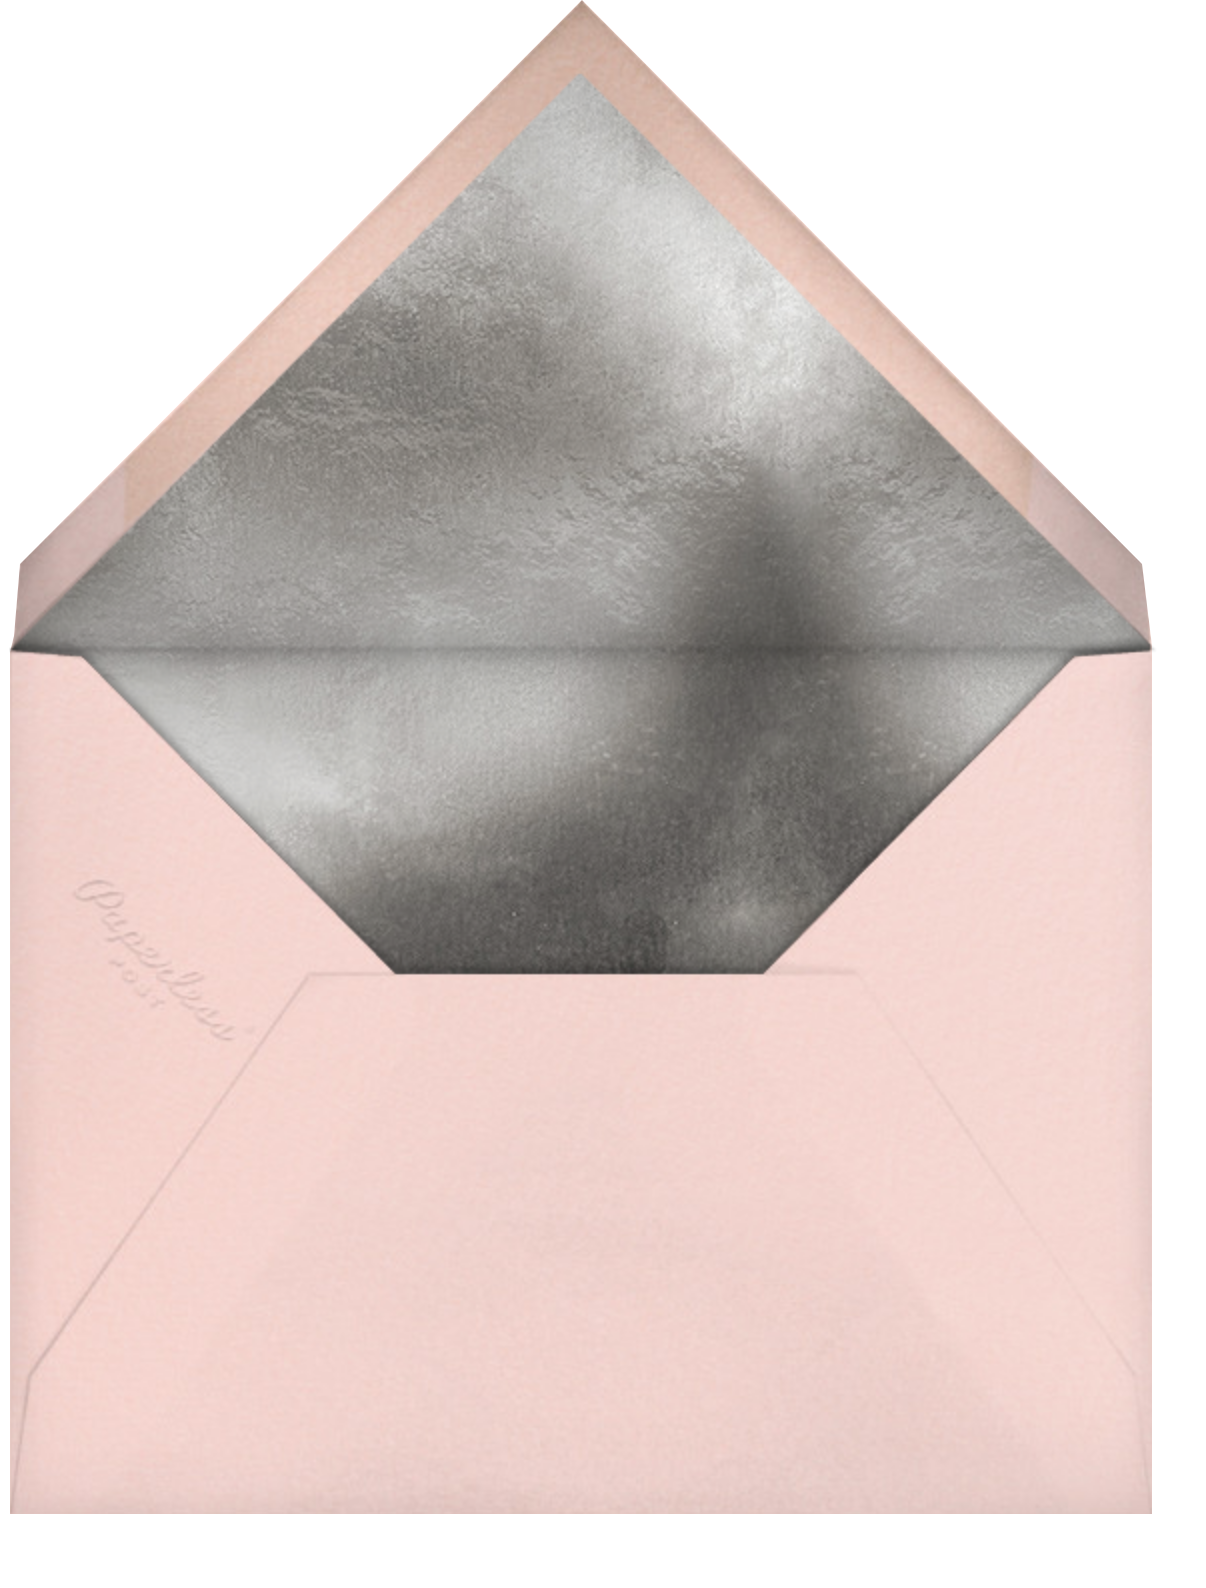 Grace and Gratitude (Thanks) - Rose Gold - Paperless Post - Thank you - envelope back